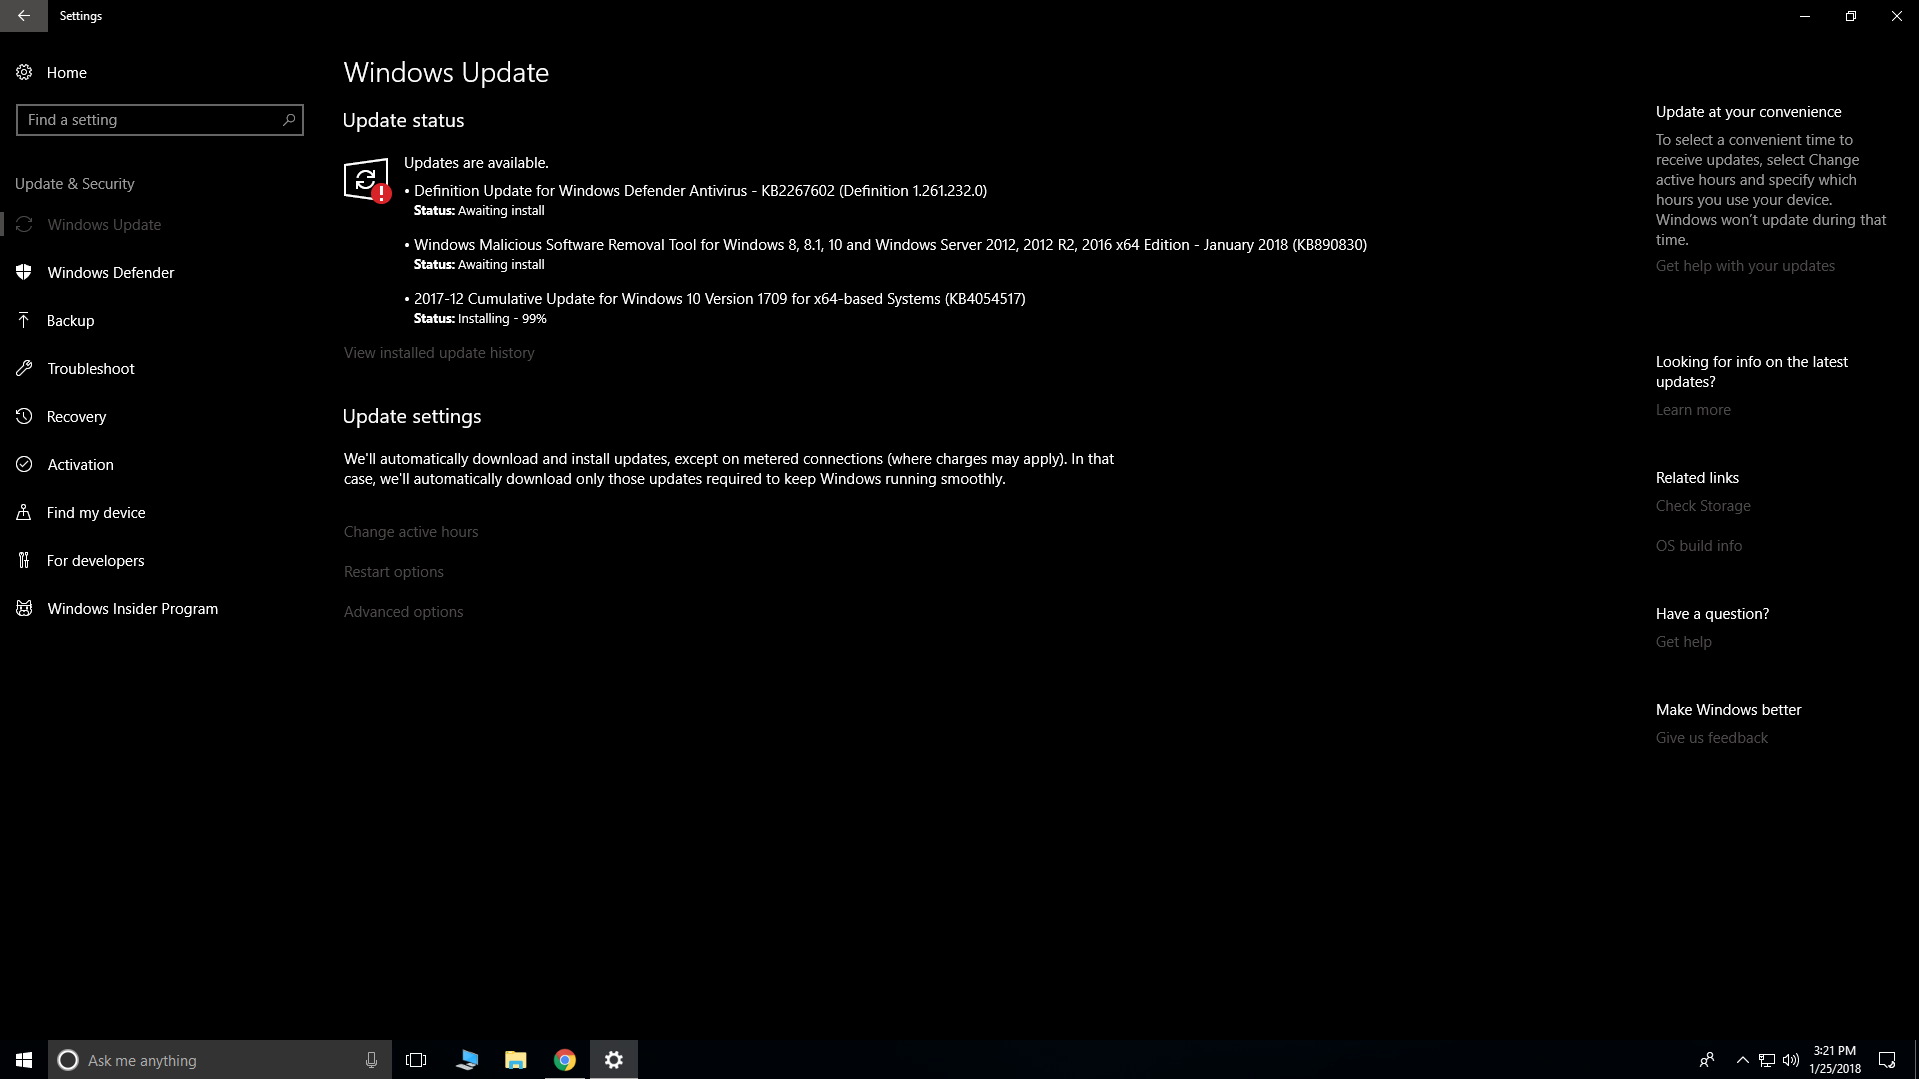 Windows update Stuck on Awaiting install  - Microsoft Community